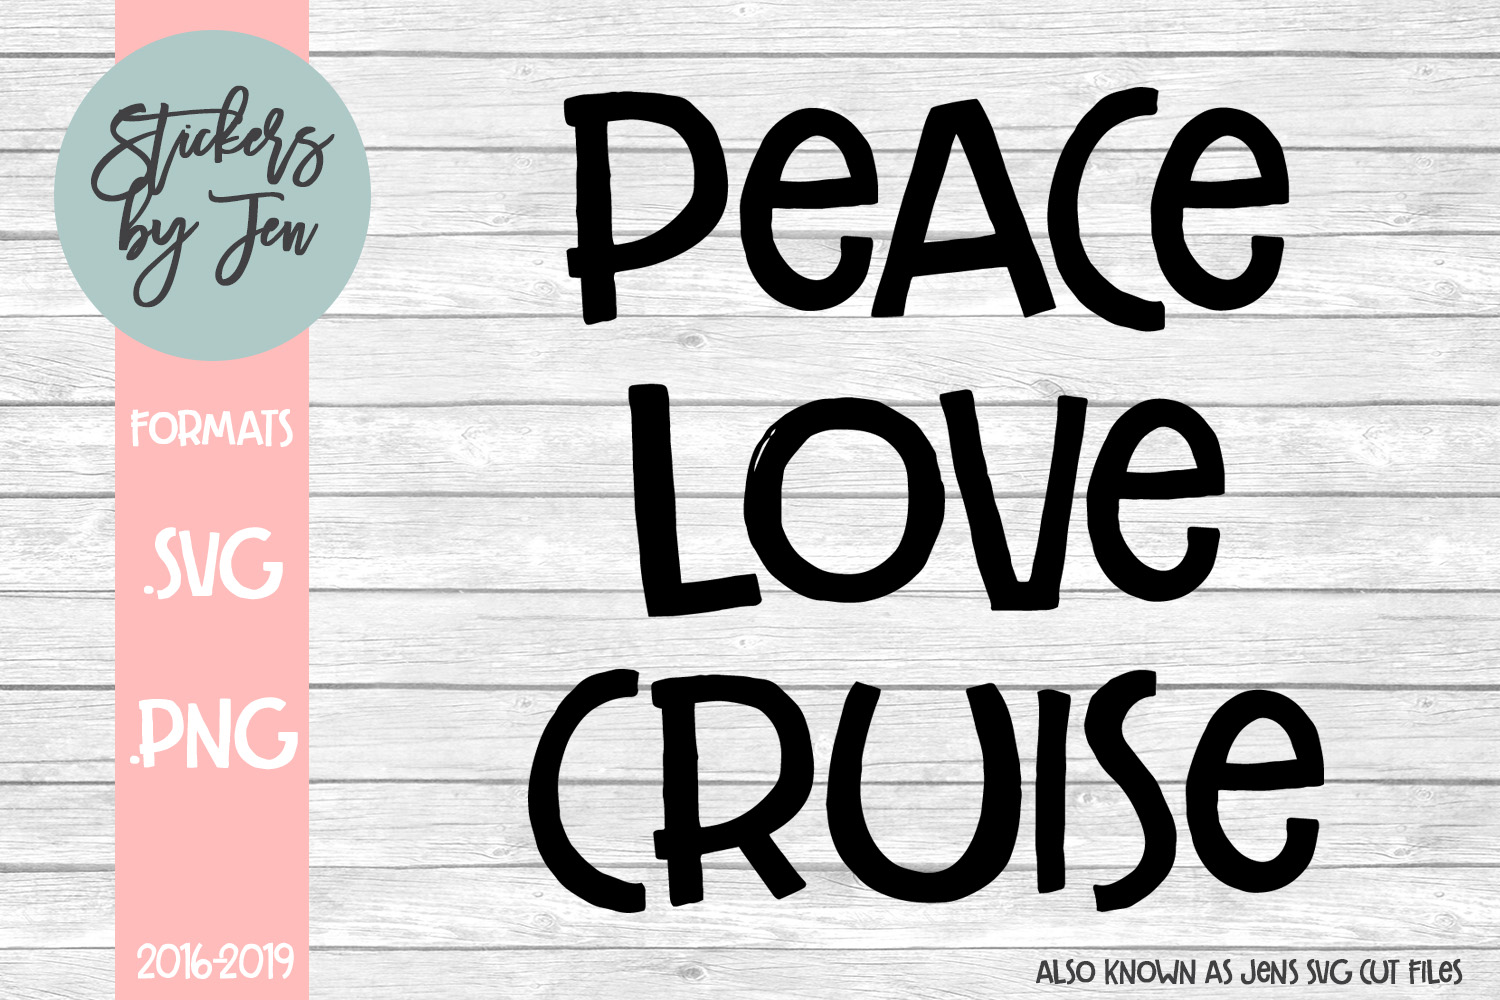 Download Free Peace Love Cruise Graphic By Stickers By Jennifer Creative Fabrica for Cricut Explore, Silhouette and other cutting machines.